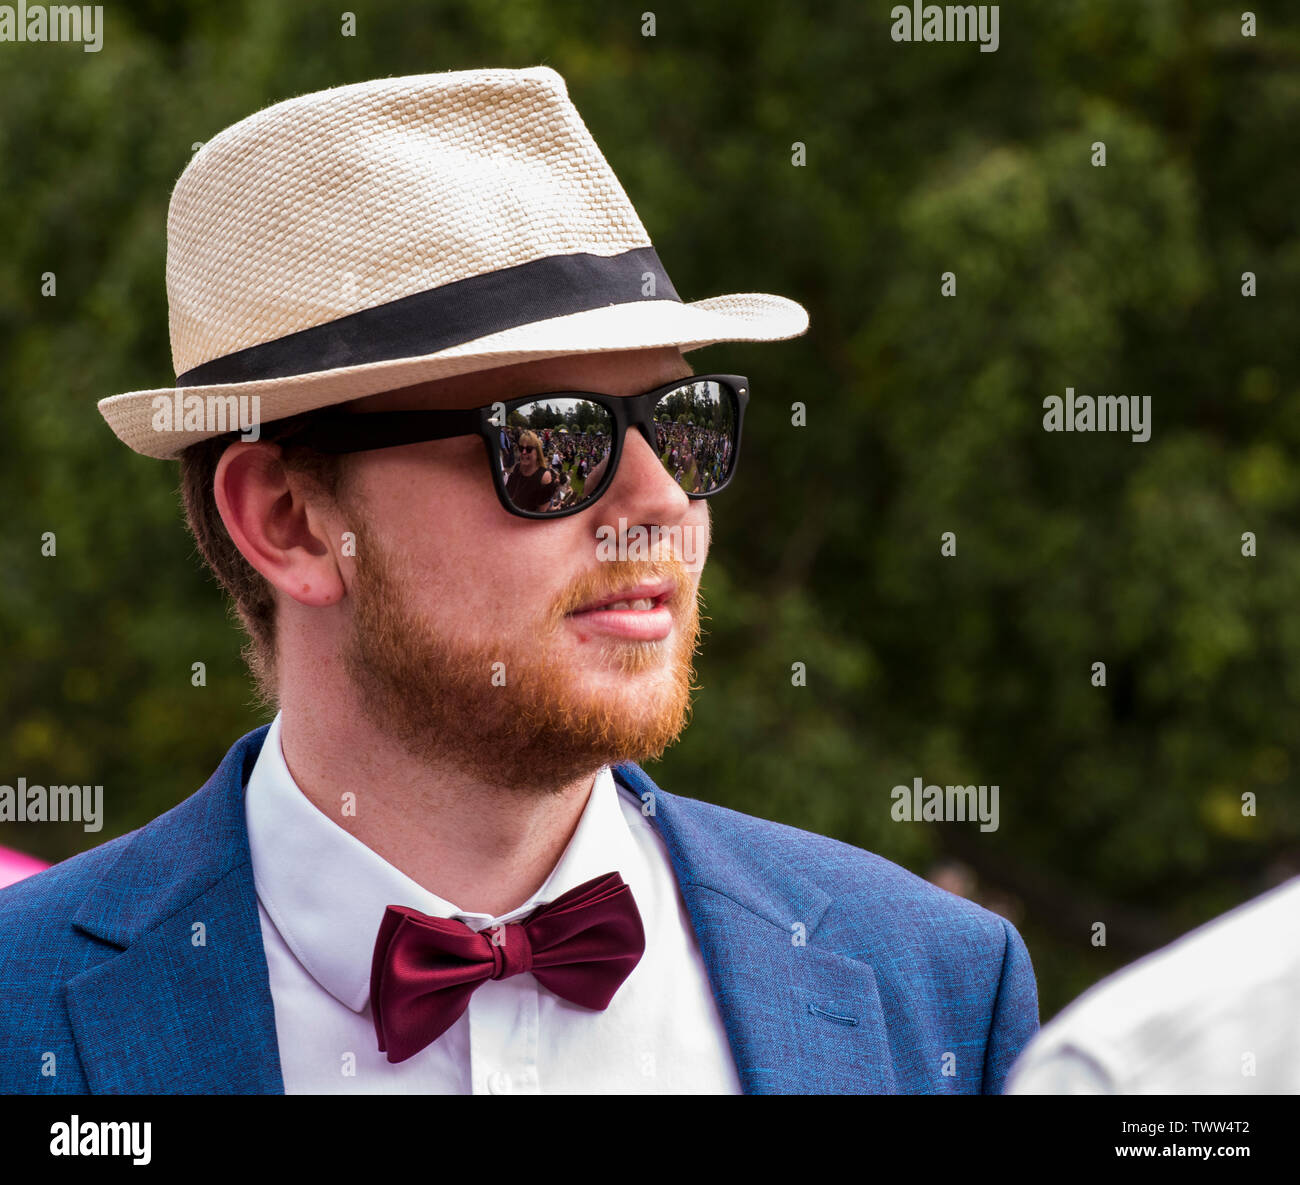 Man wearing trilby hat and sunglasses in Valley Gardens on 1940s Day, Harrogate, England, UK, 23rd June 2019. Stock Photo